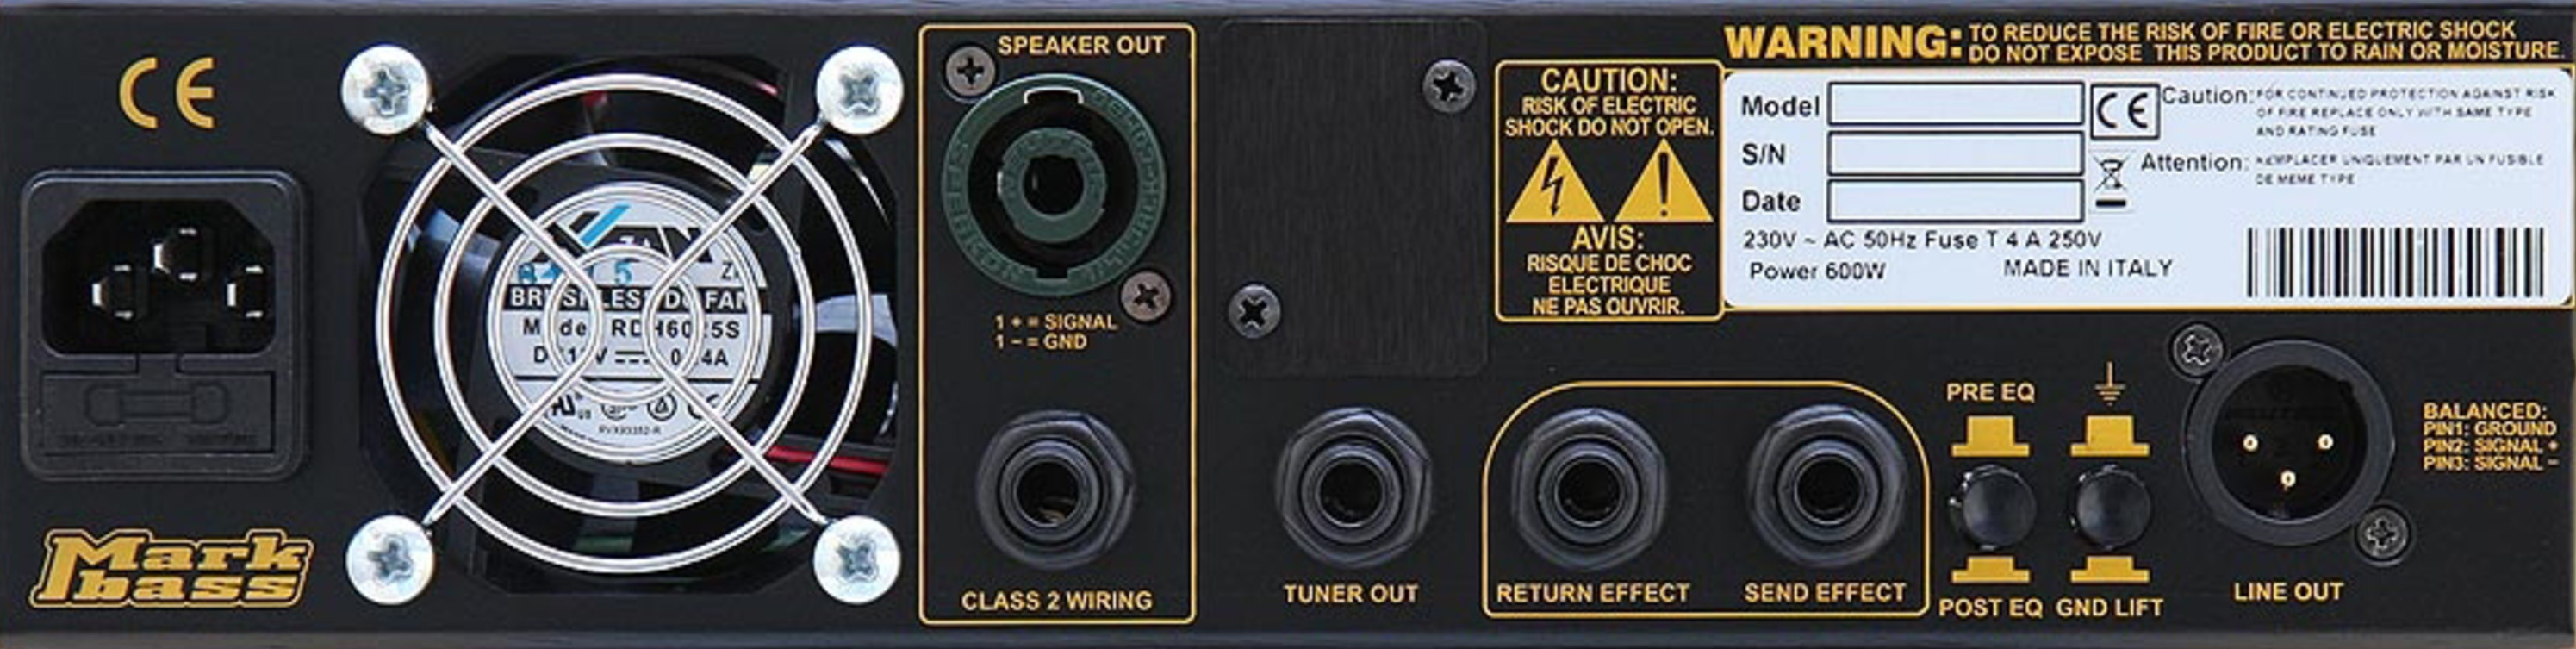 MARKBASS CMD 102 P LM3 Combo Rear Panel